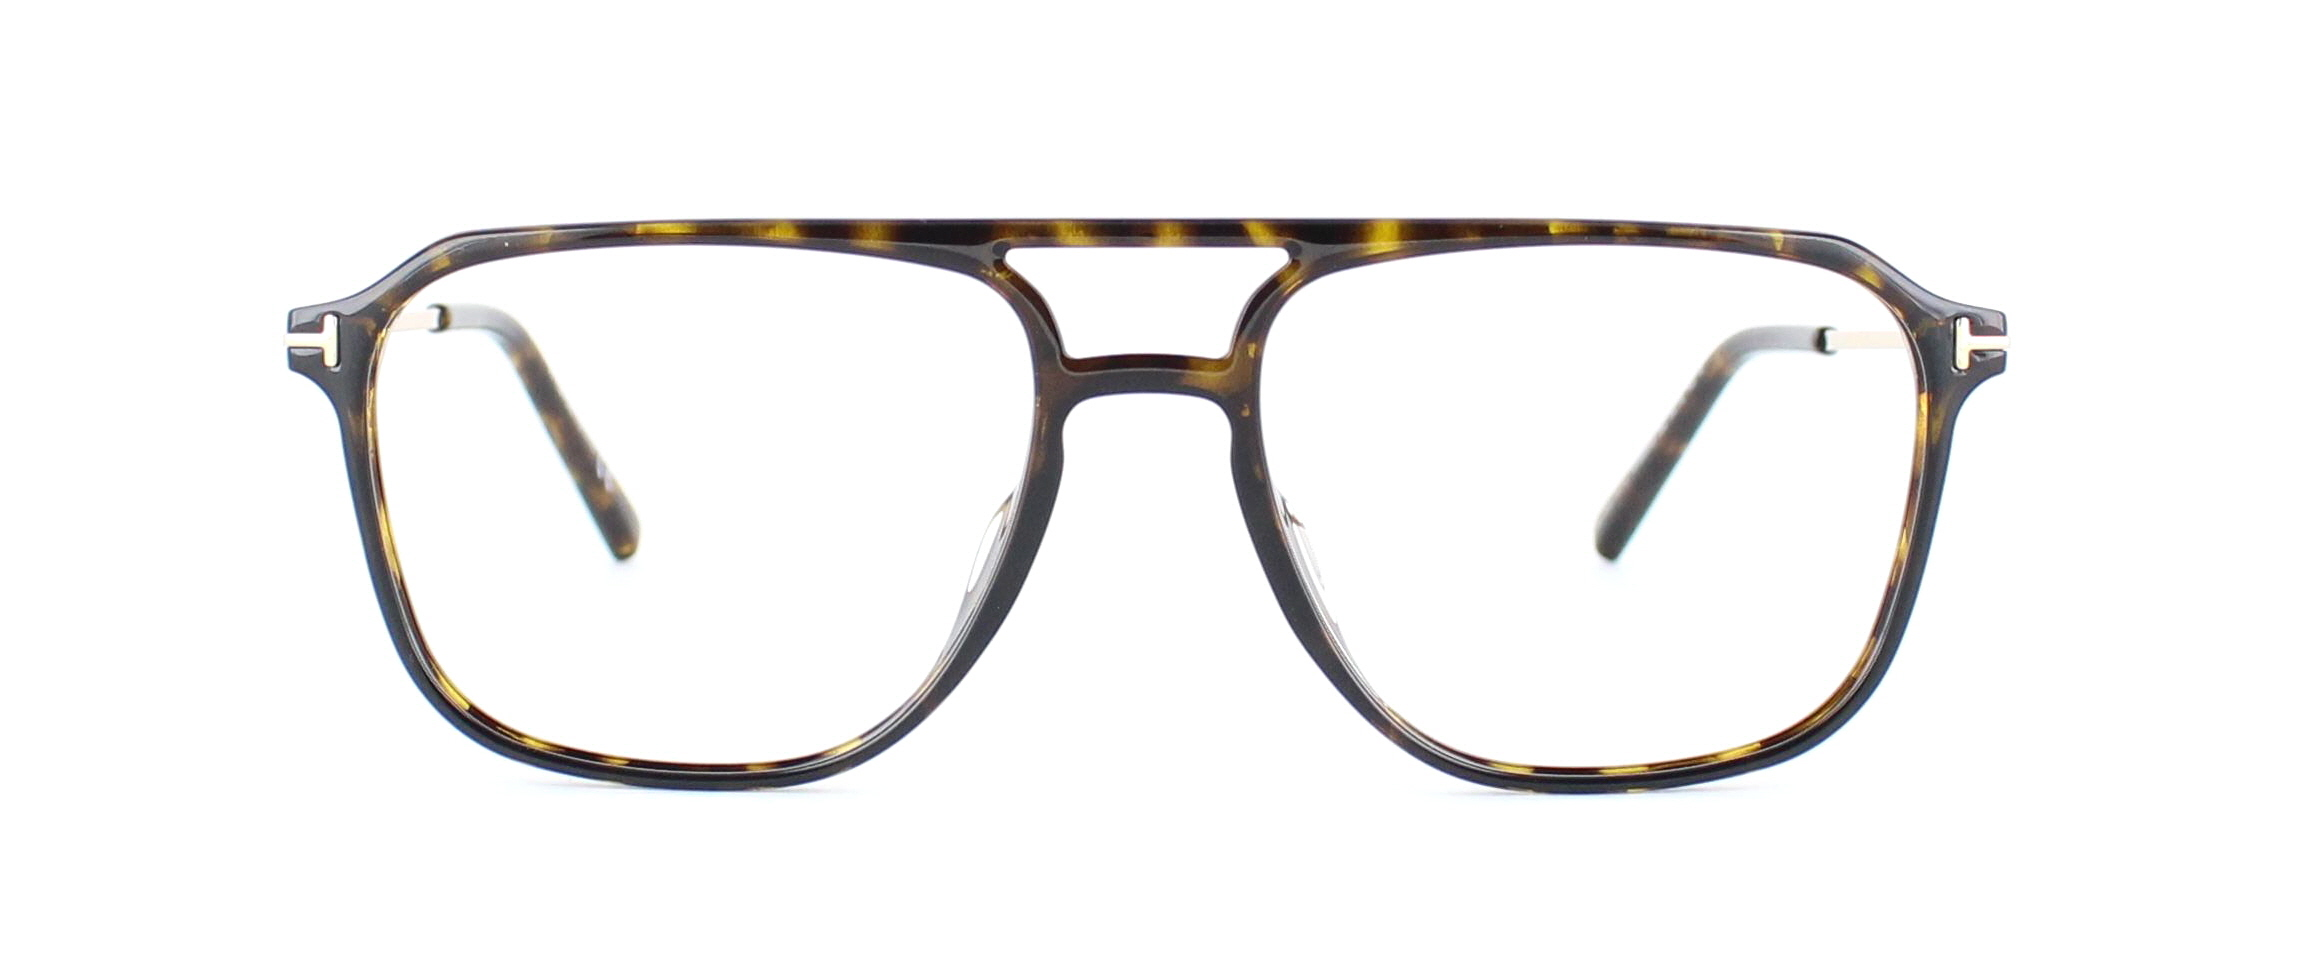 Tom Ford TF 5665-B front